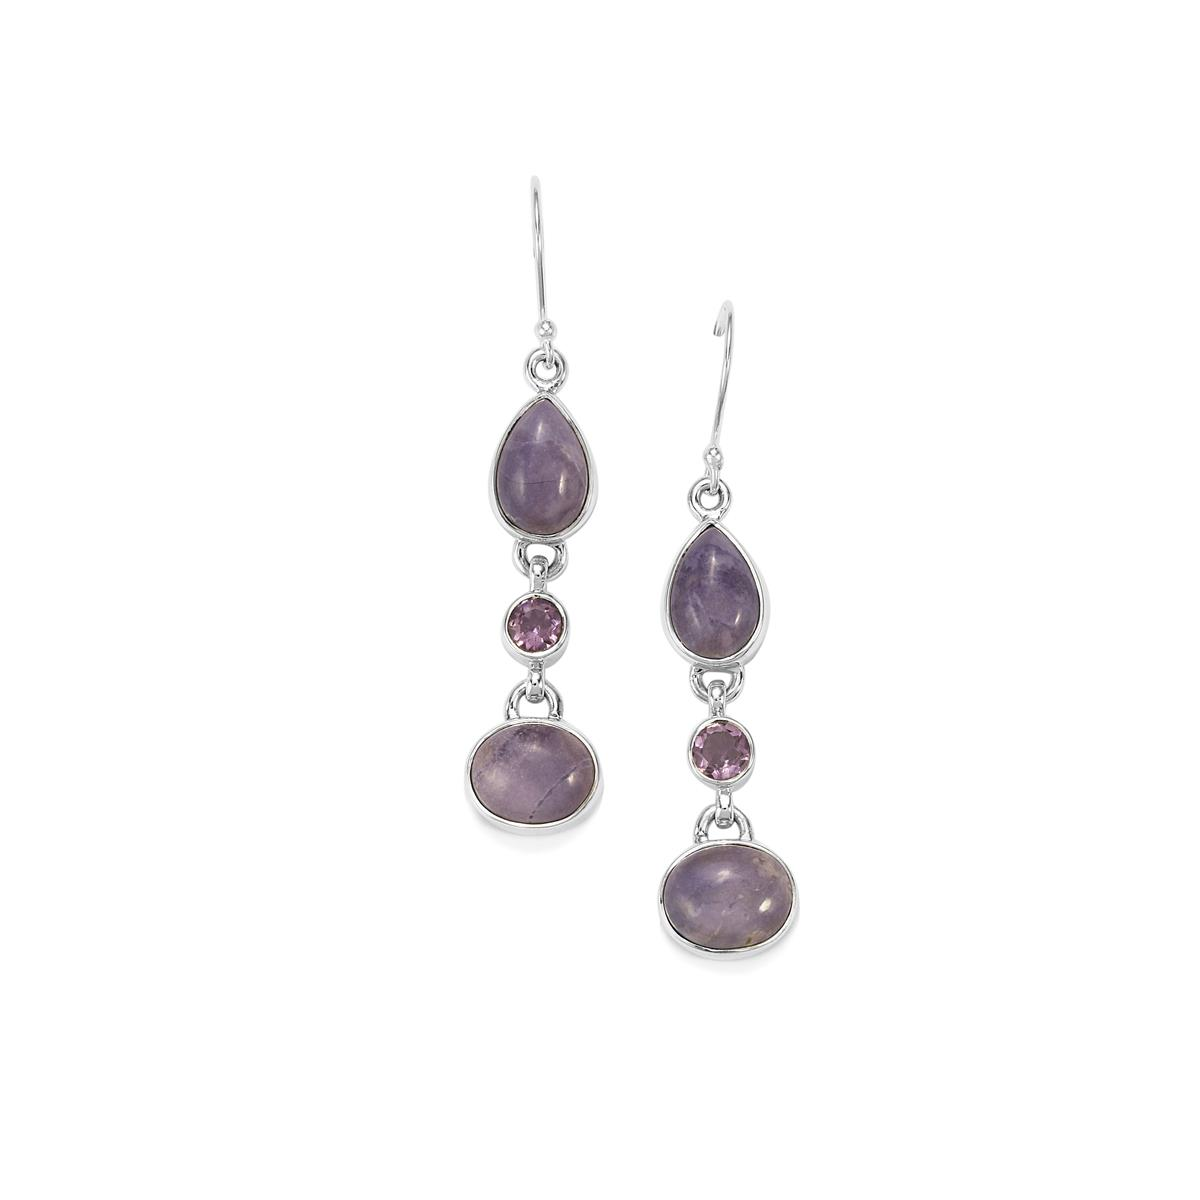 aeb9f2e9c Tiffany Opal Earrings with Bahia Amethyst in Sterling Silver 13cts | IKCS05  | Gemporia